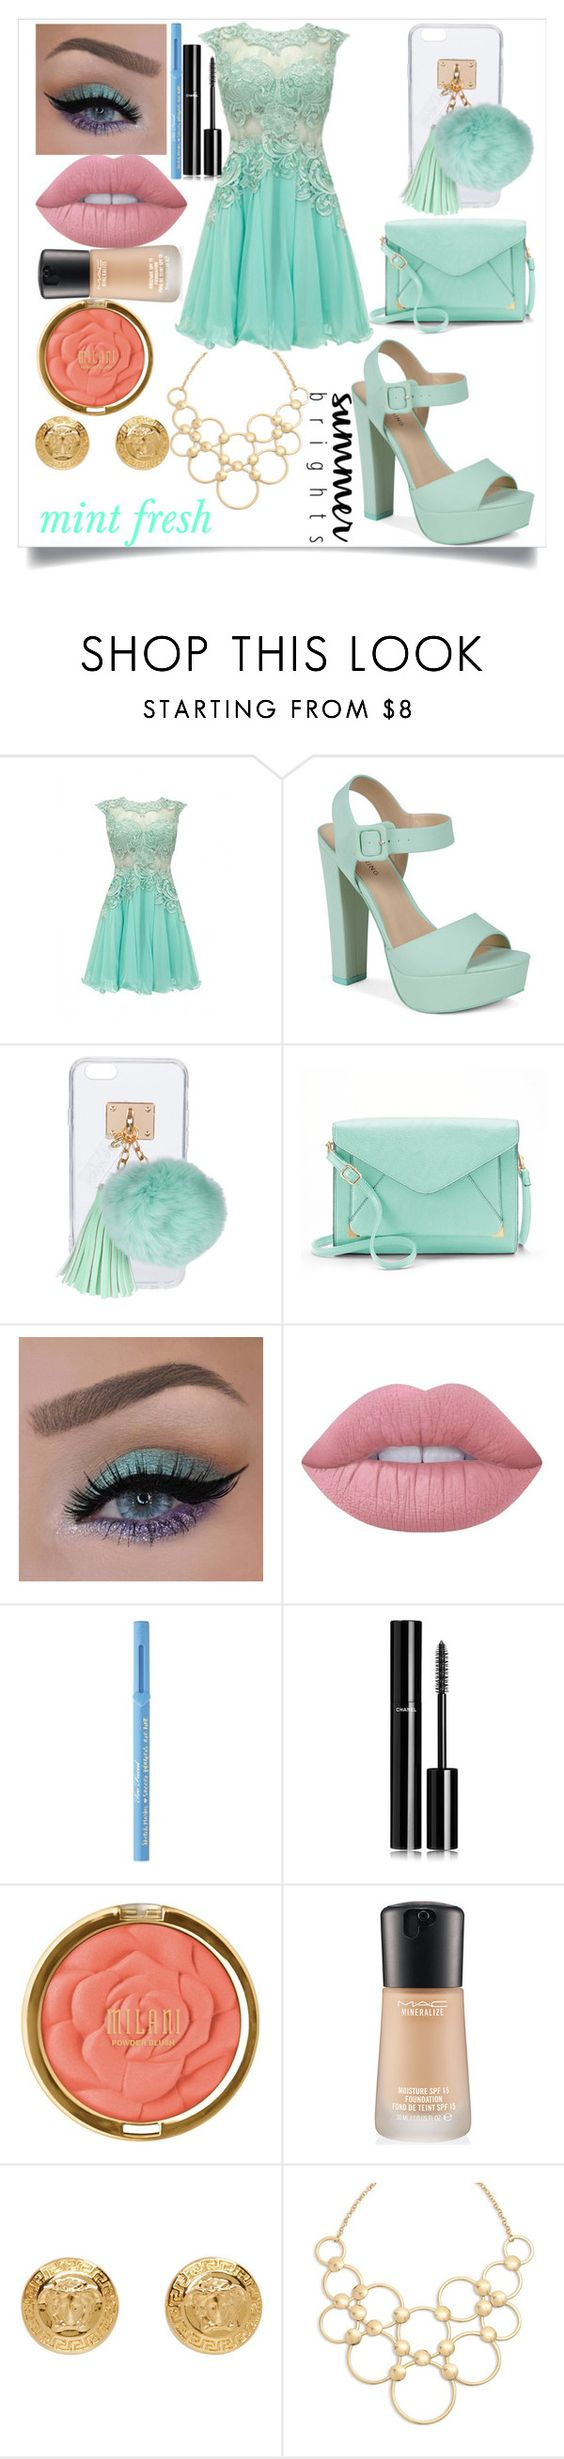 """minty fresh"" by whitewood ❤ liked on Polyvore featuring Call it SPRING, Ashlyn'd, Apt. 9, Lime Crime, Too Faced Cosmetics, Chanel, Milani, MAC Cosmetics, Versace and Vera Bradley"